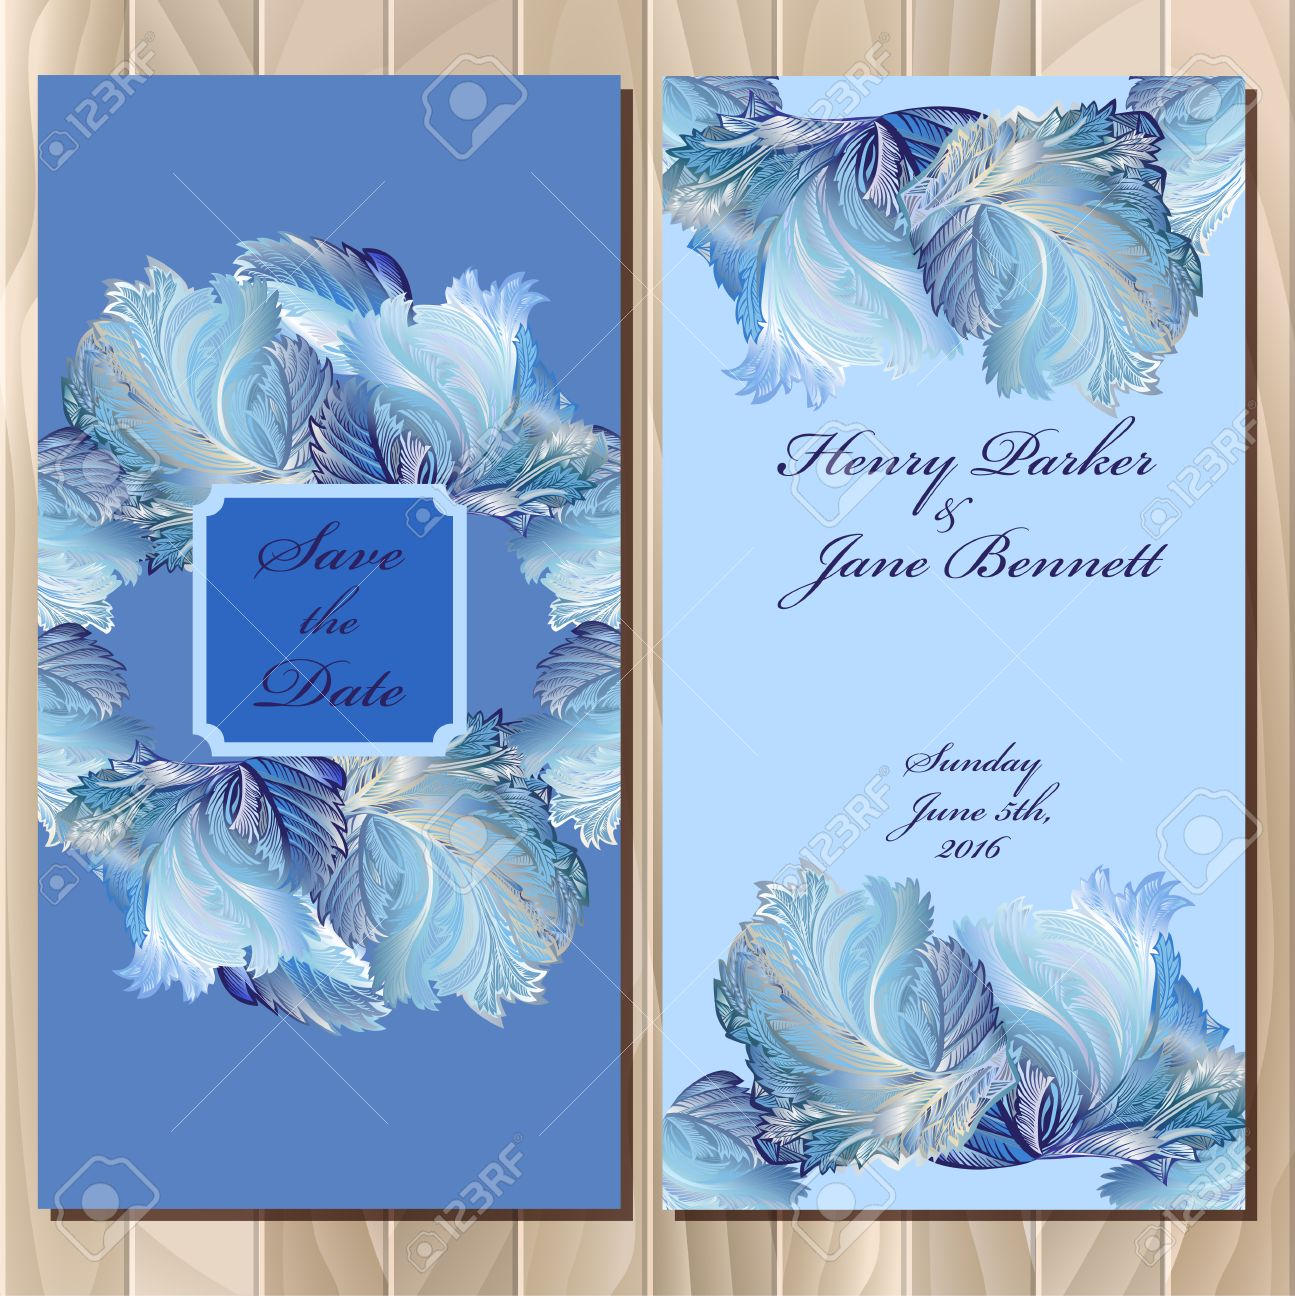 Wedding Invitation Card With Frozen Glass Design Printable Backgrounds